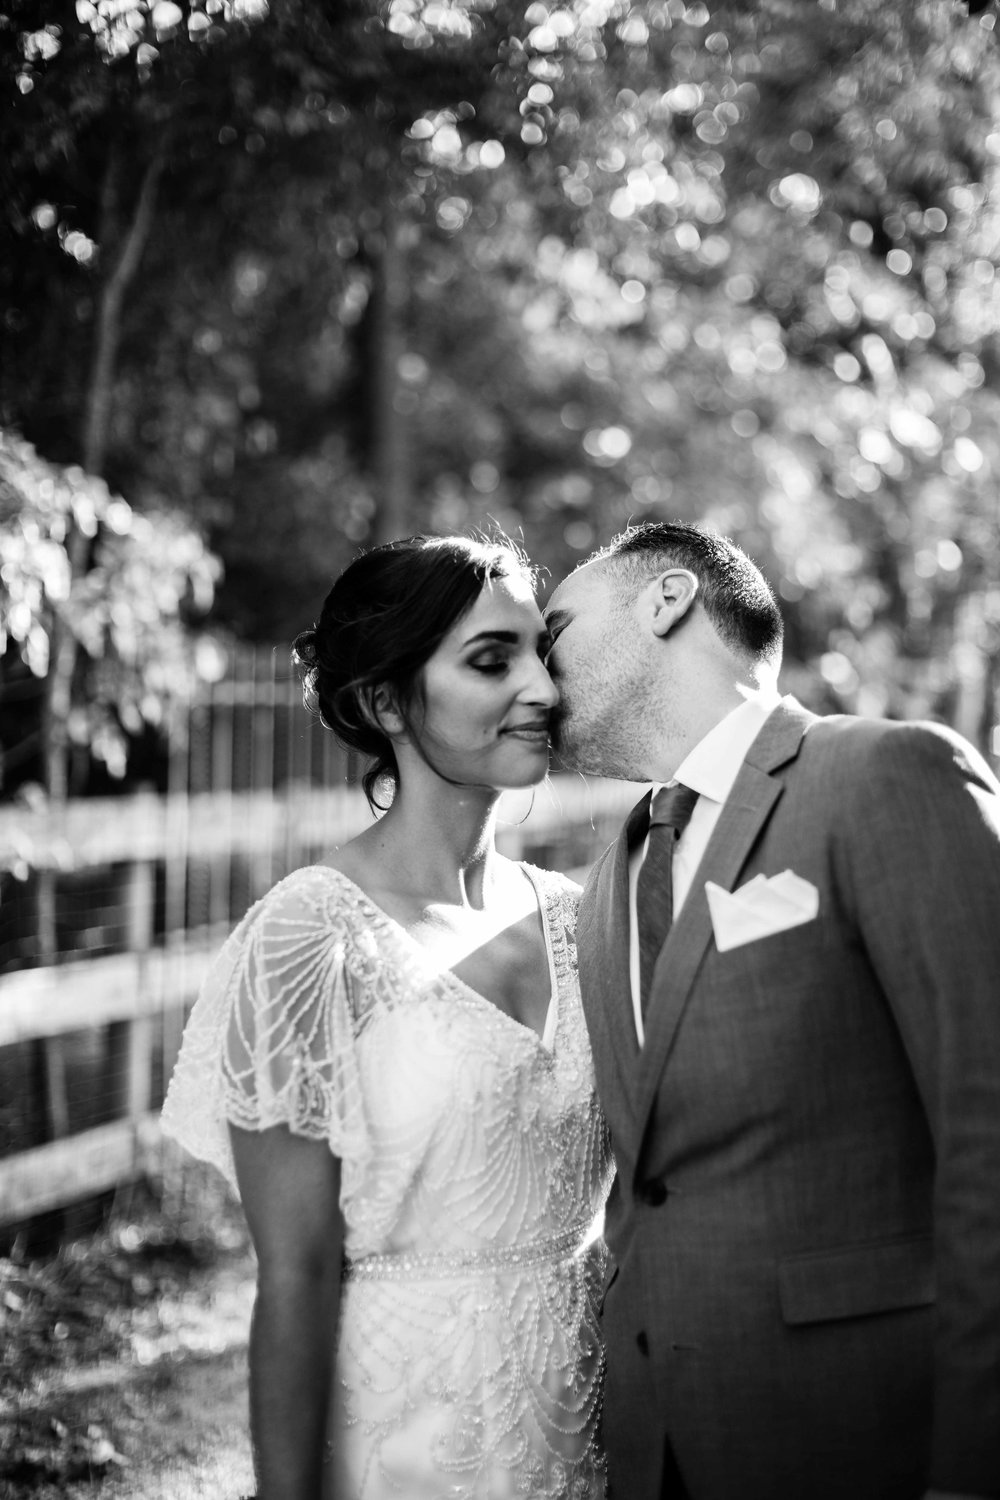 Cassandra & Justin Laidback wedding in wine country - Sonoma, CA